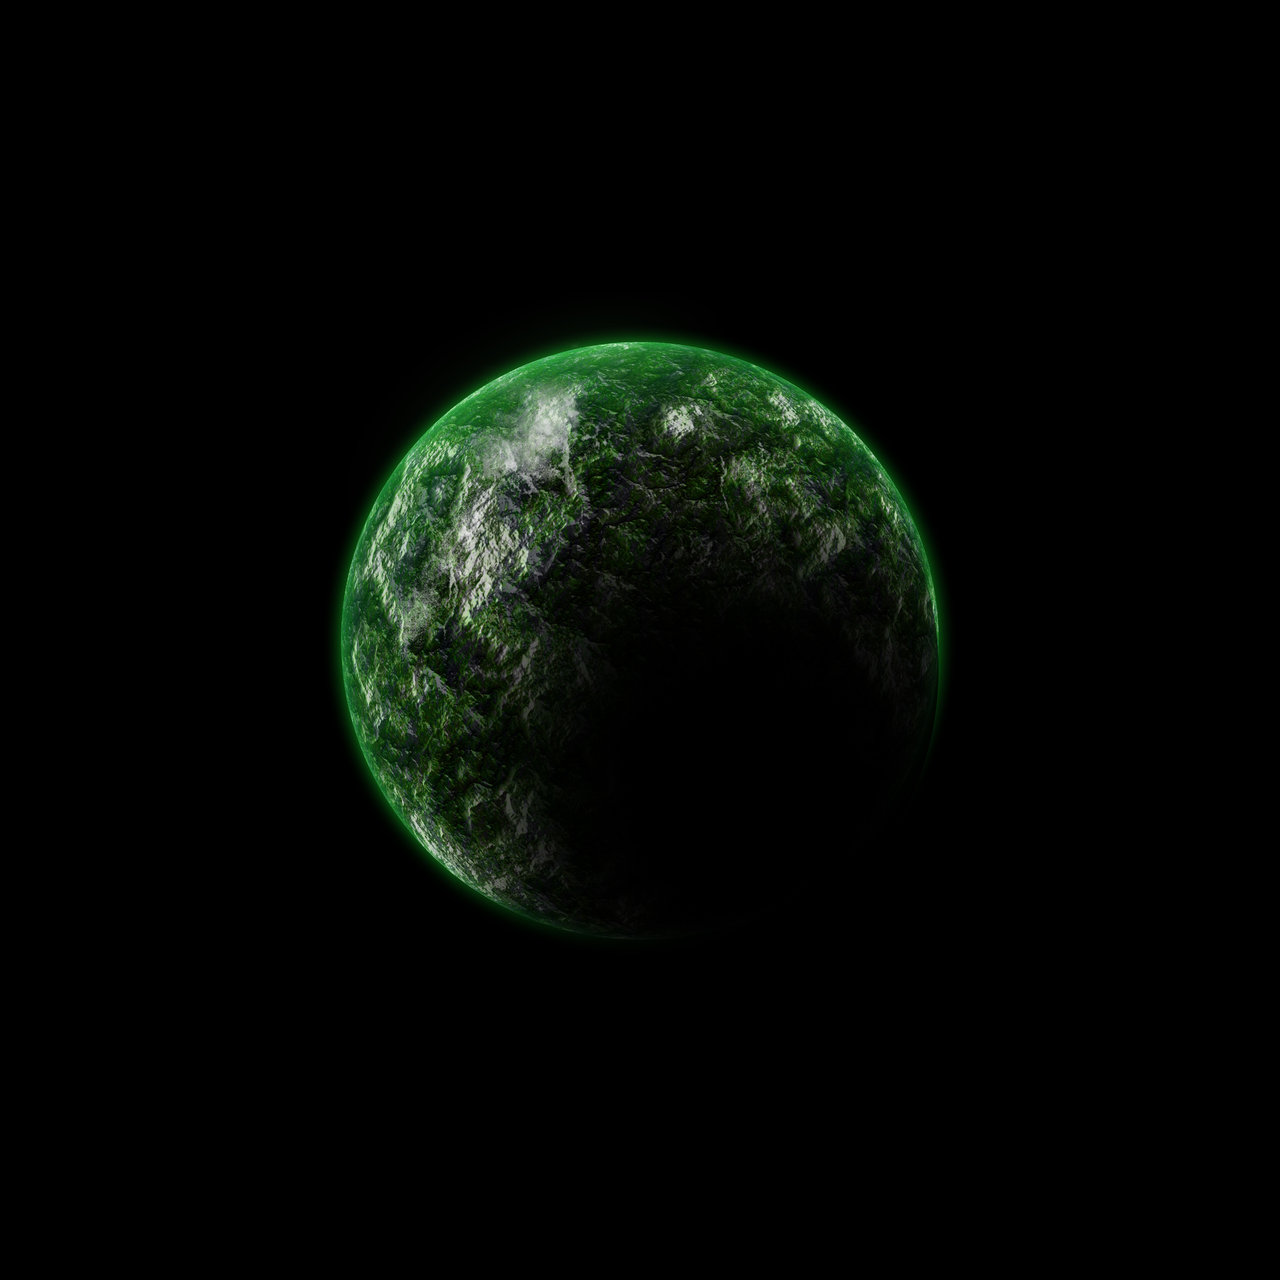 green_planet_by_huglebunnys-d2yms5q.jpg